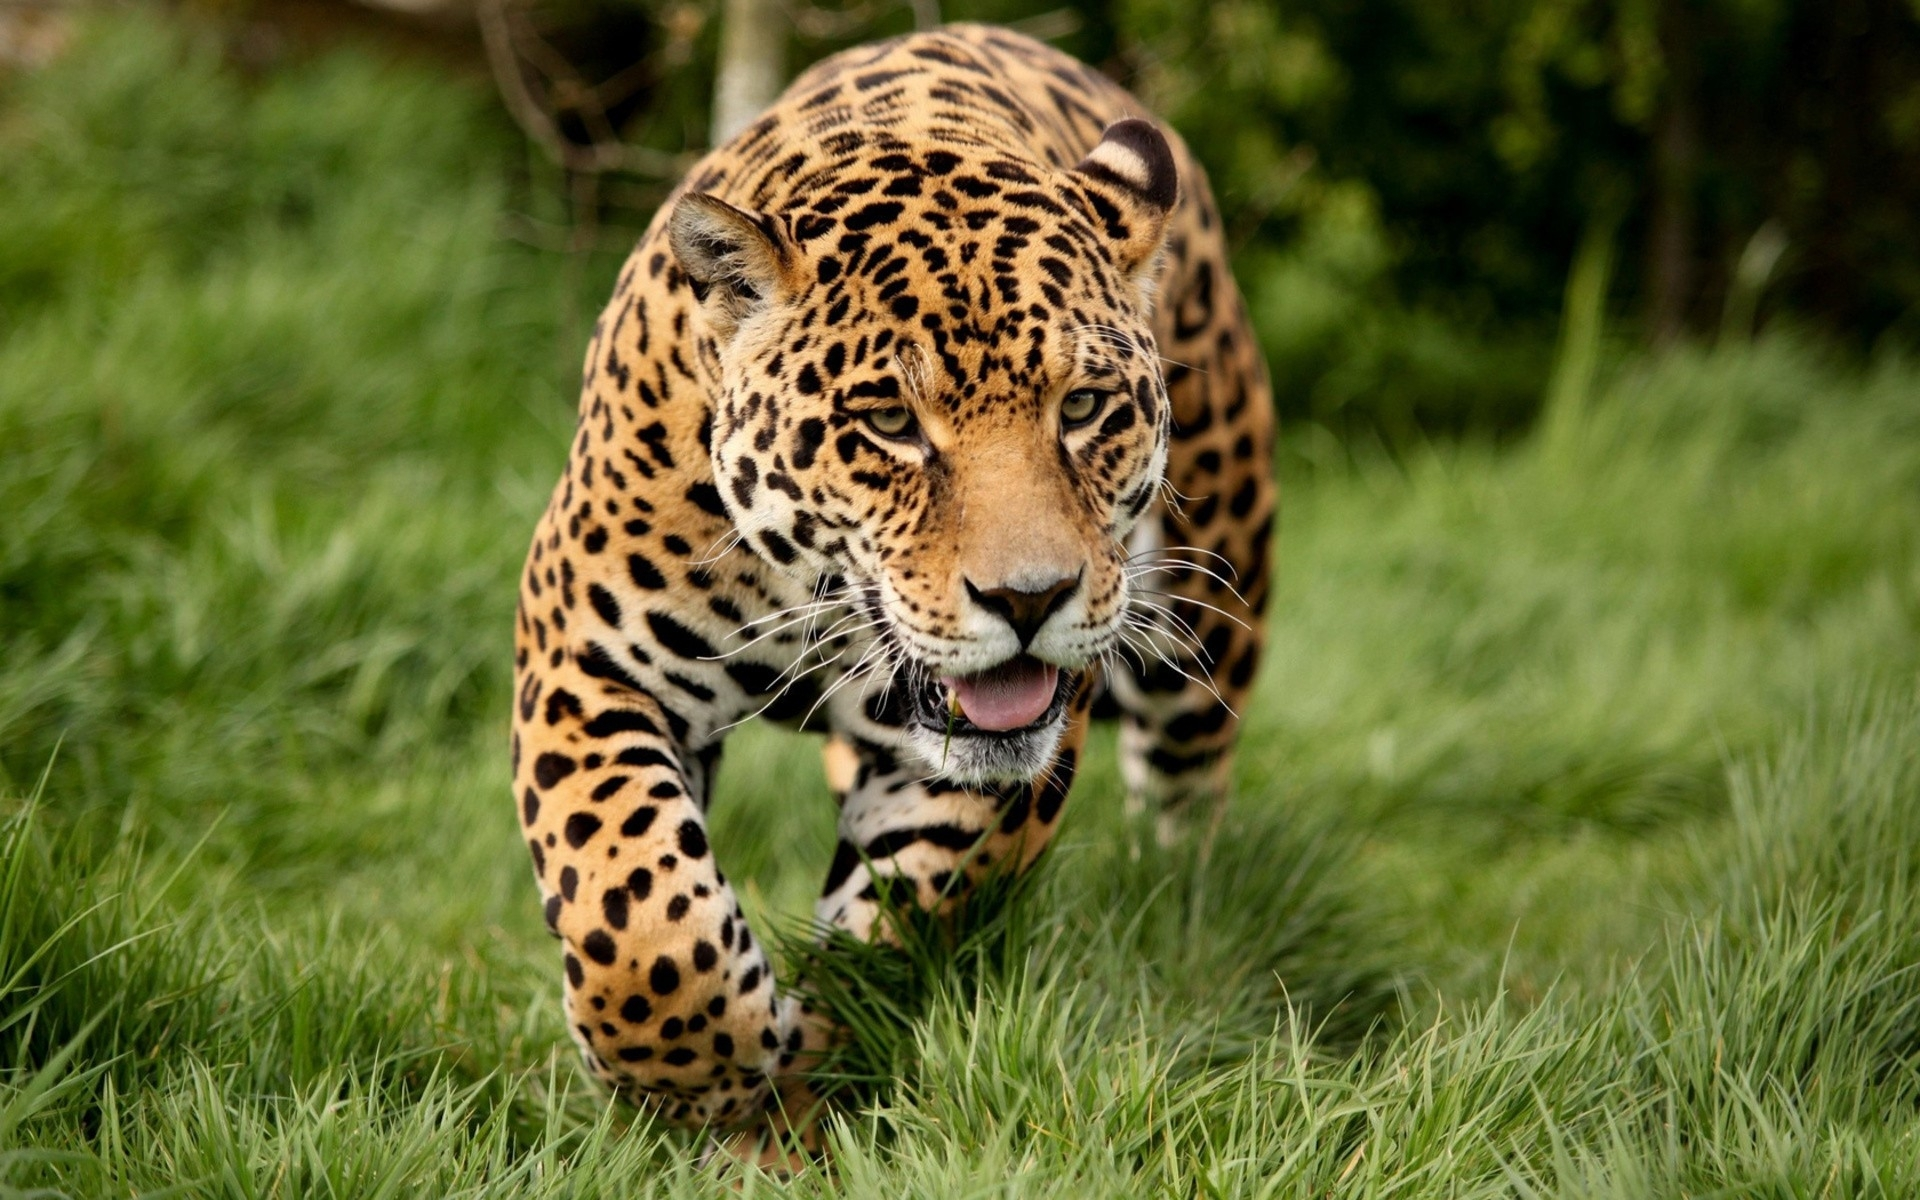 Running Pant... Images Of Panthers